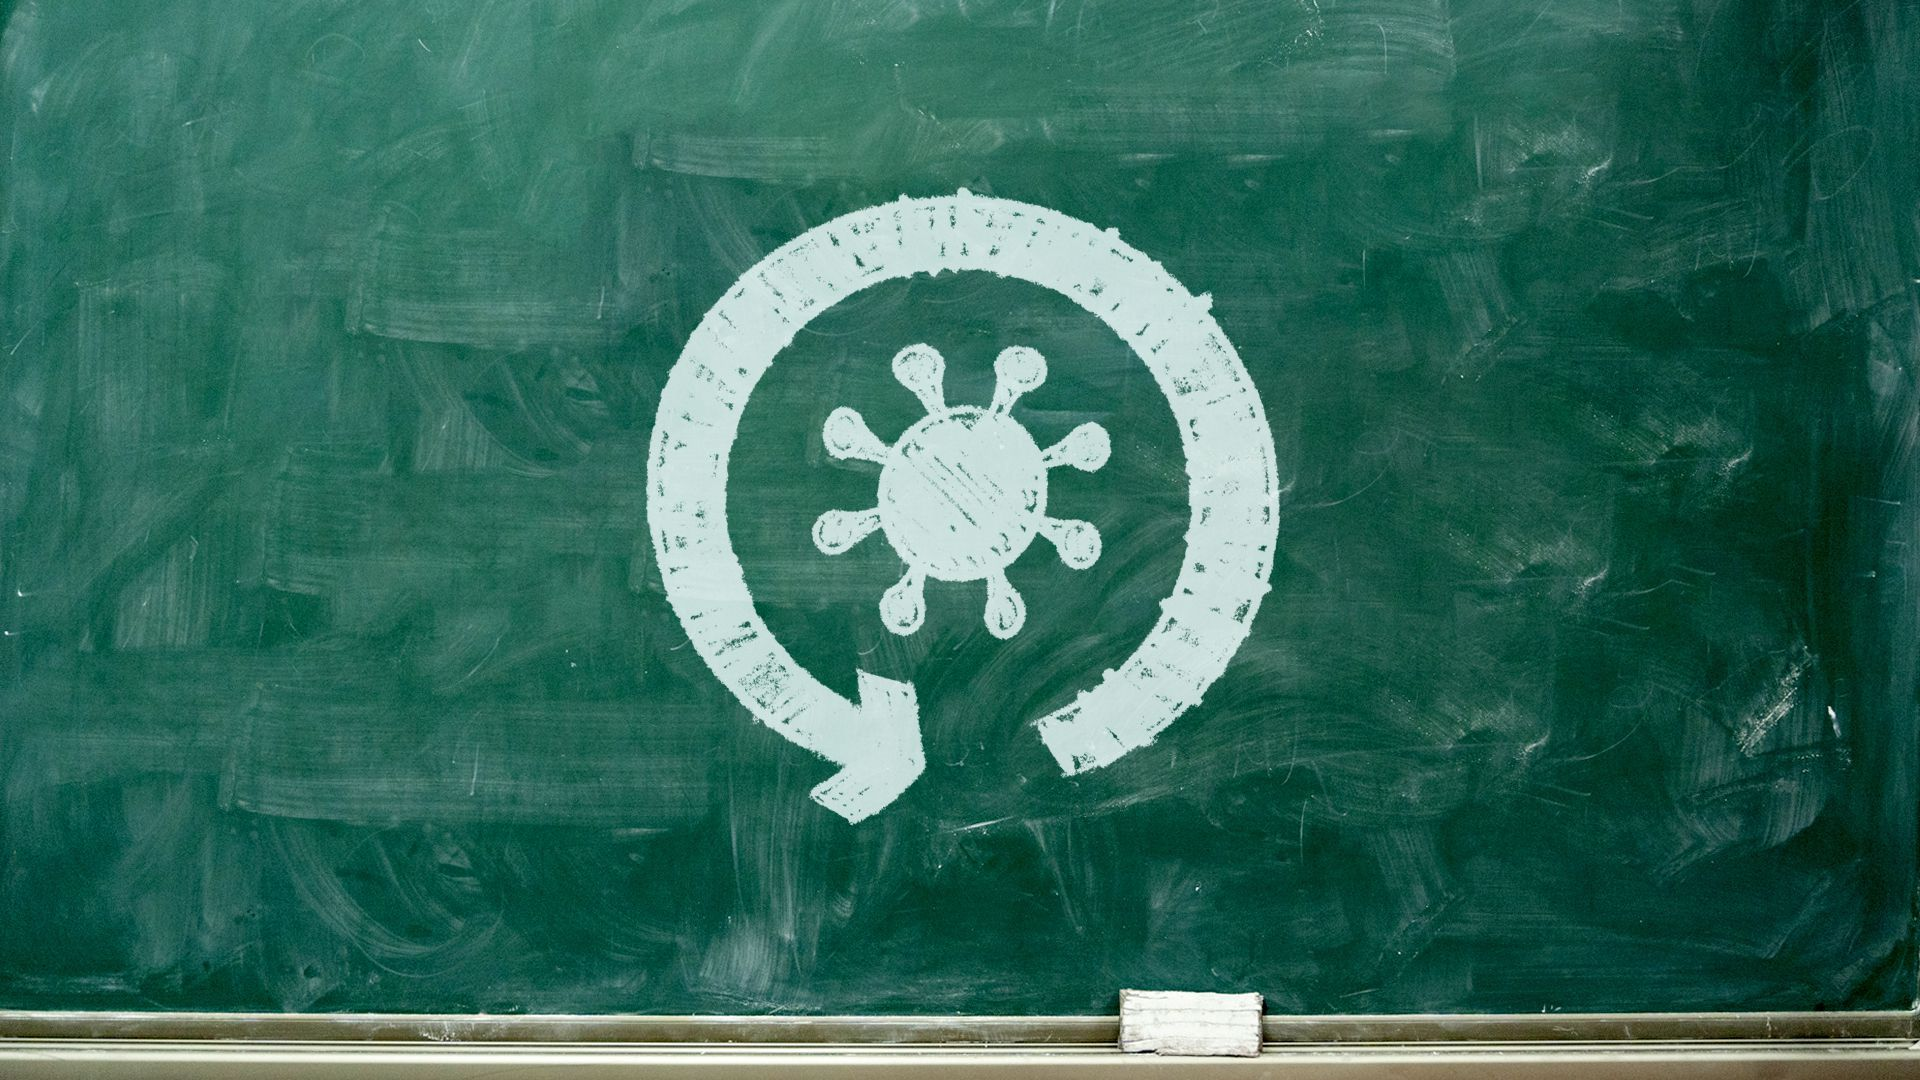 Illustration of a chalkboard with a circular arrow and a coronavirus icon drawn in chalk.